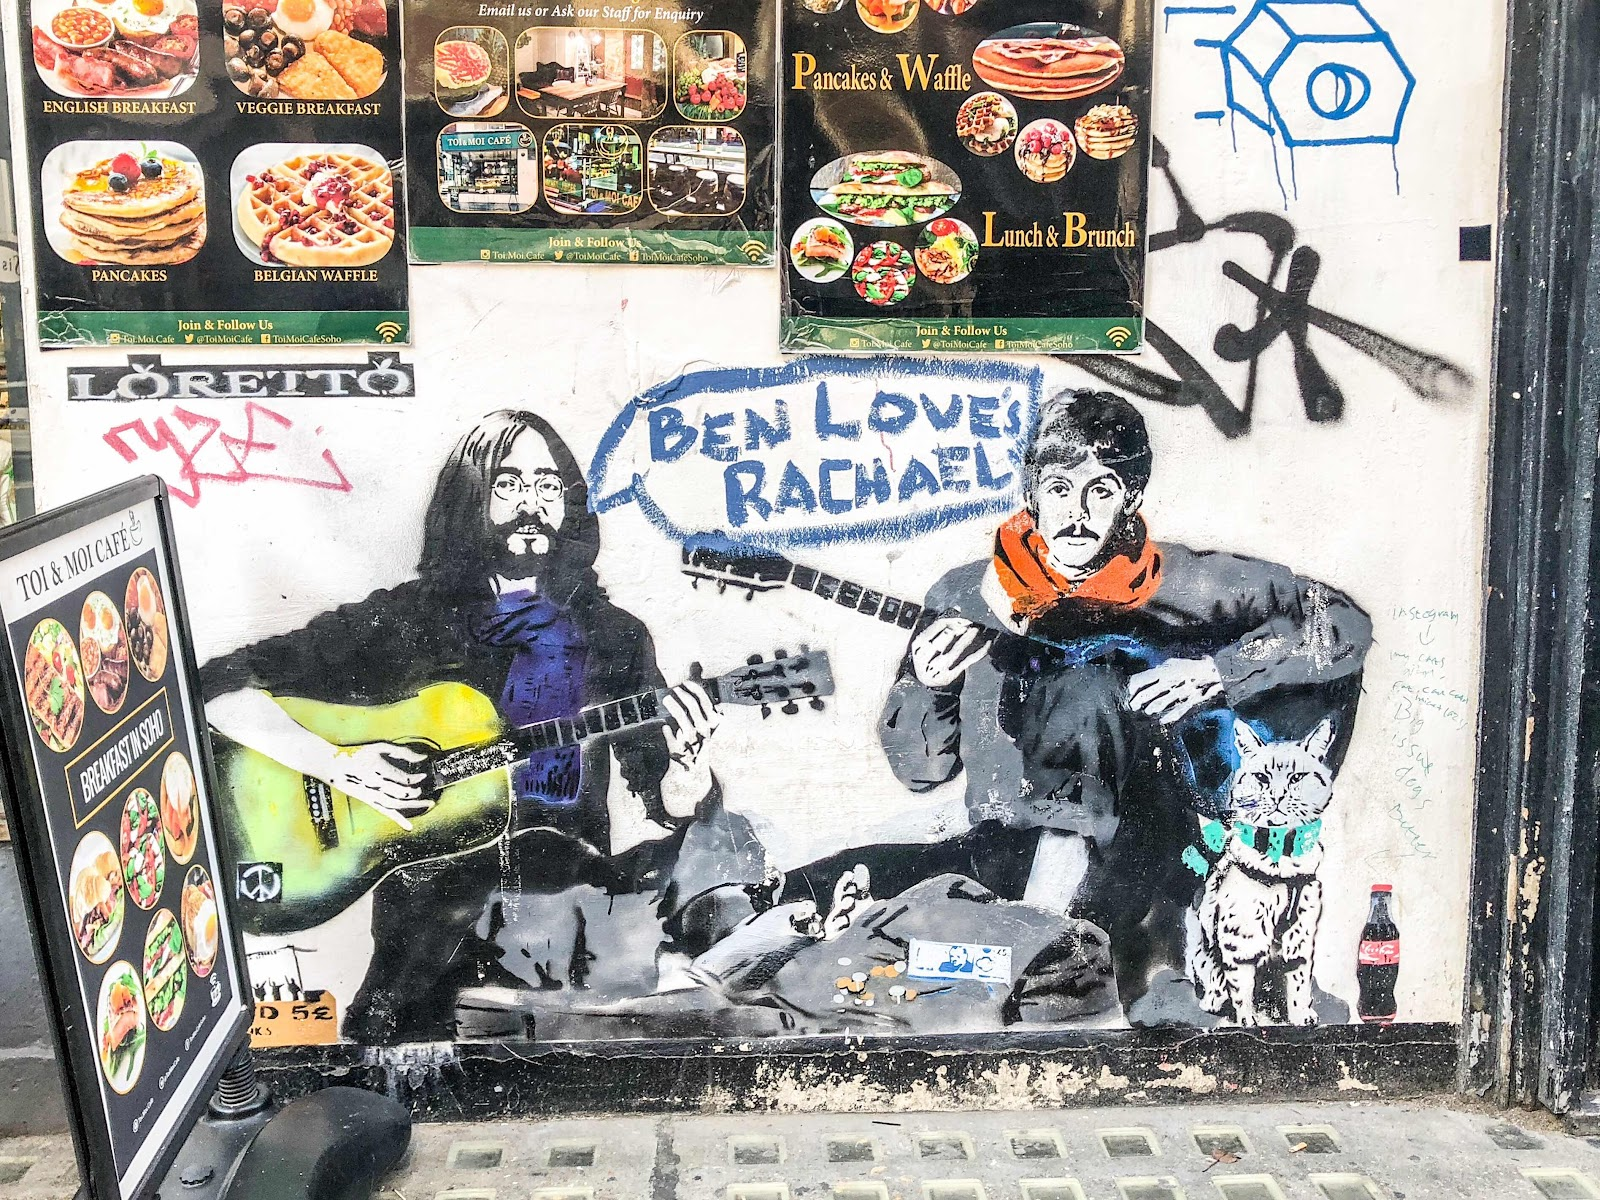 london-lifestyle-blog-top-10-things-to-do-in-soho-london-street-art